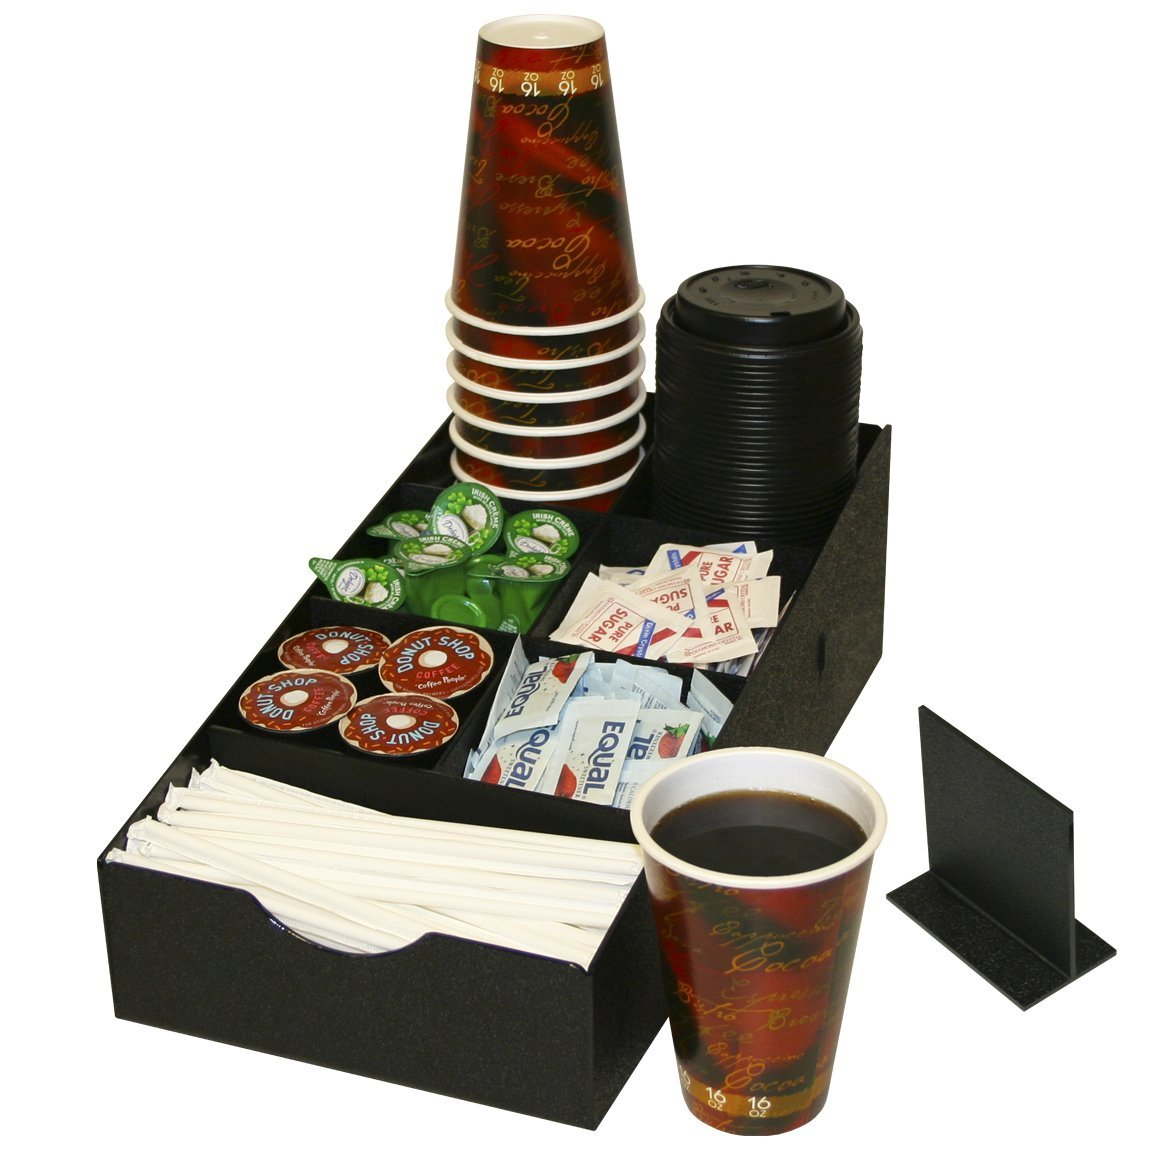 Coffee Condiment Organizer with 8 Compartments.